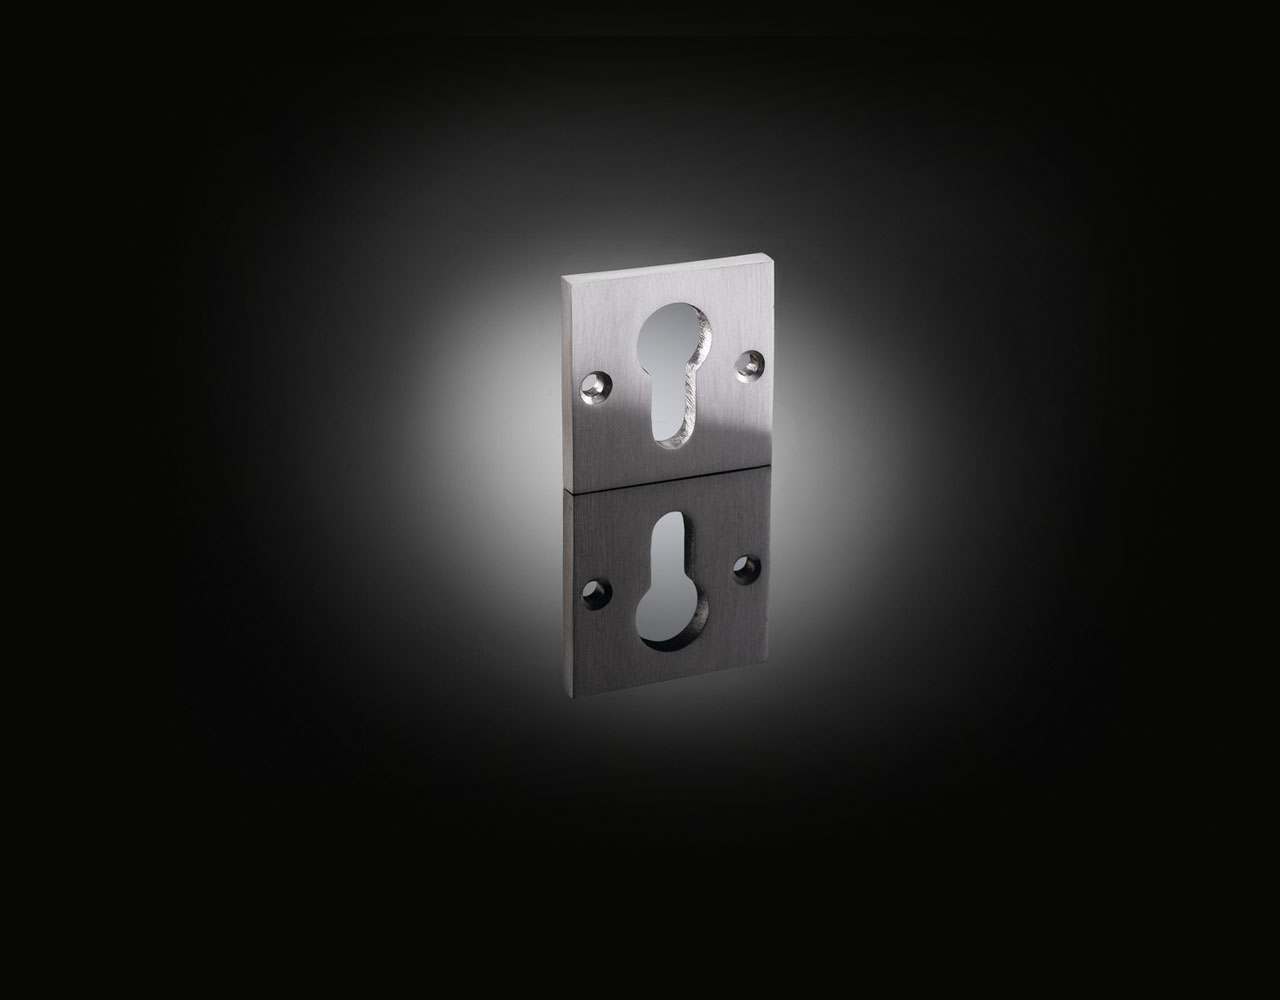 MME01 luxury square escutcheon designed by Architect Michel Mossessian from izé